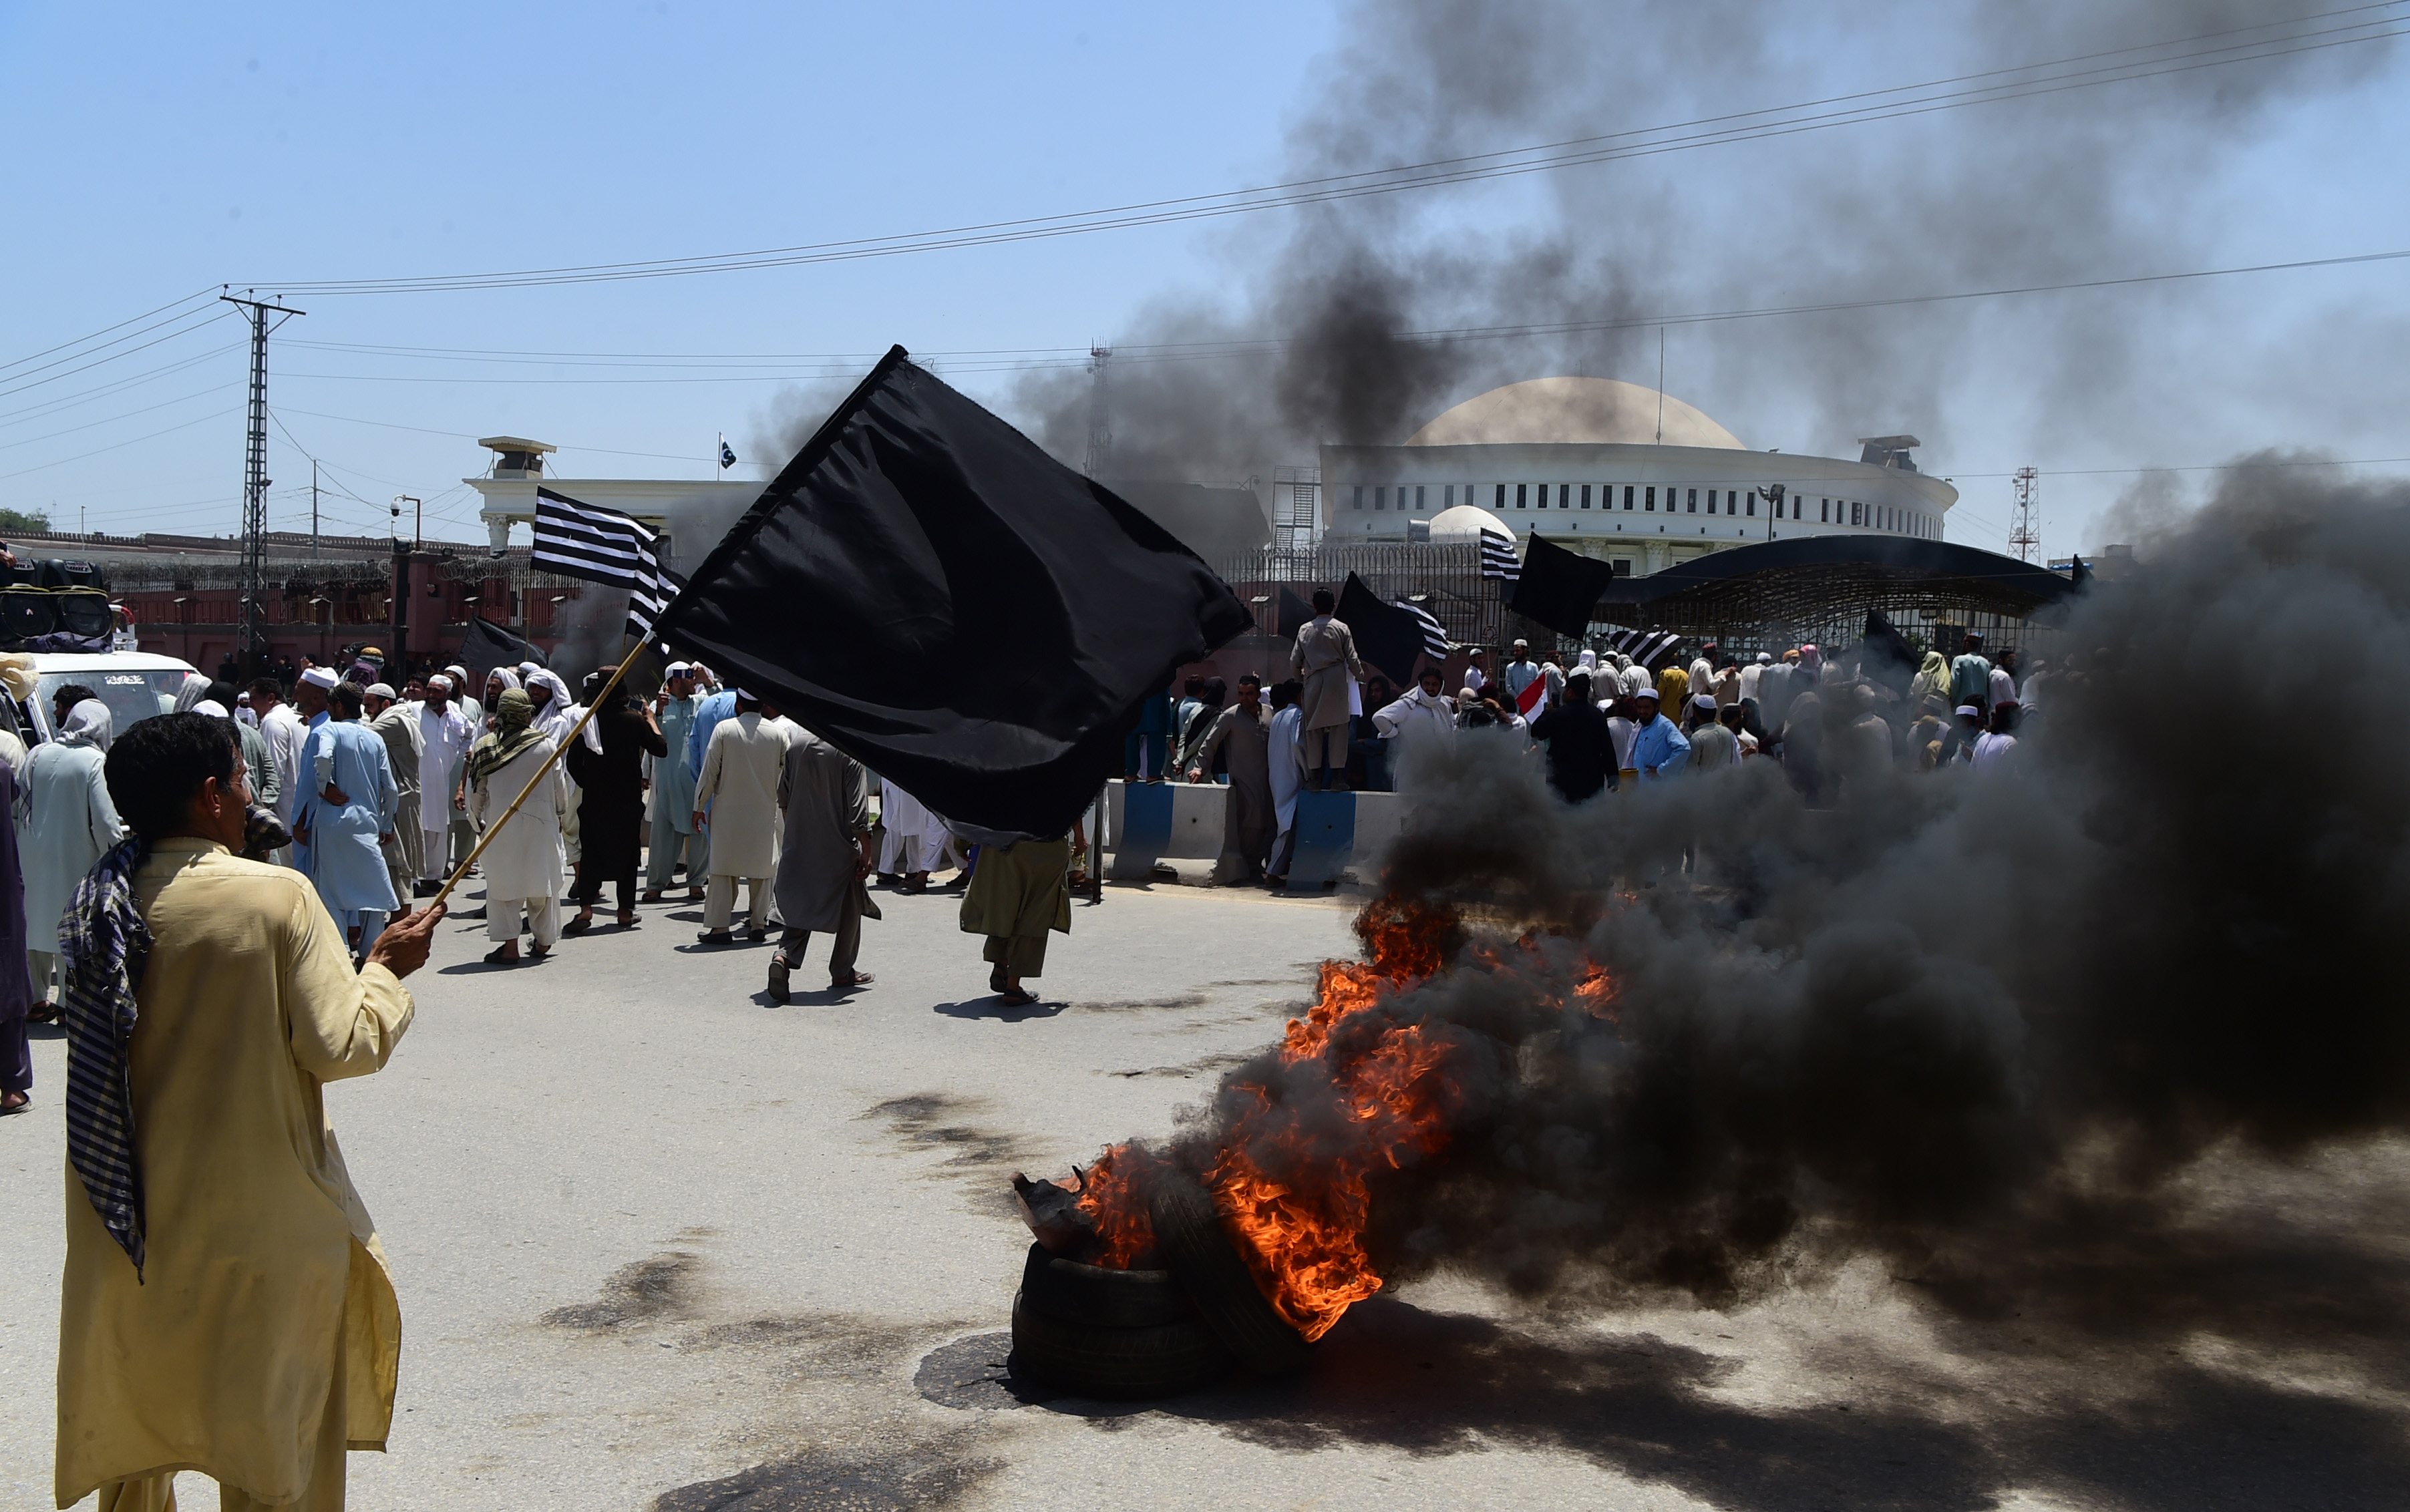 Supporters of the Jamiat Ulema-e-Islam-Fazl party protest against the merger in Peshawar. Photo credit: AFP